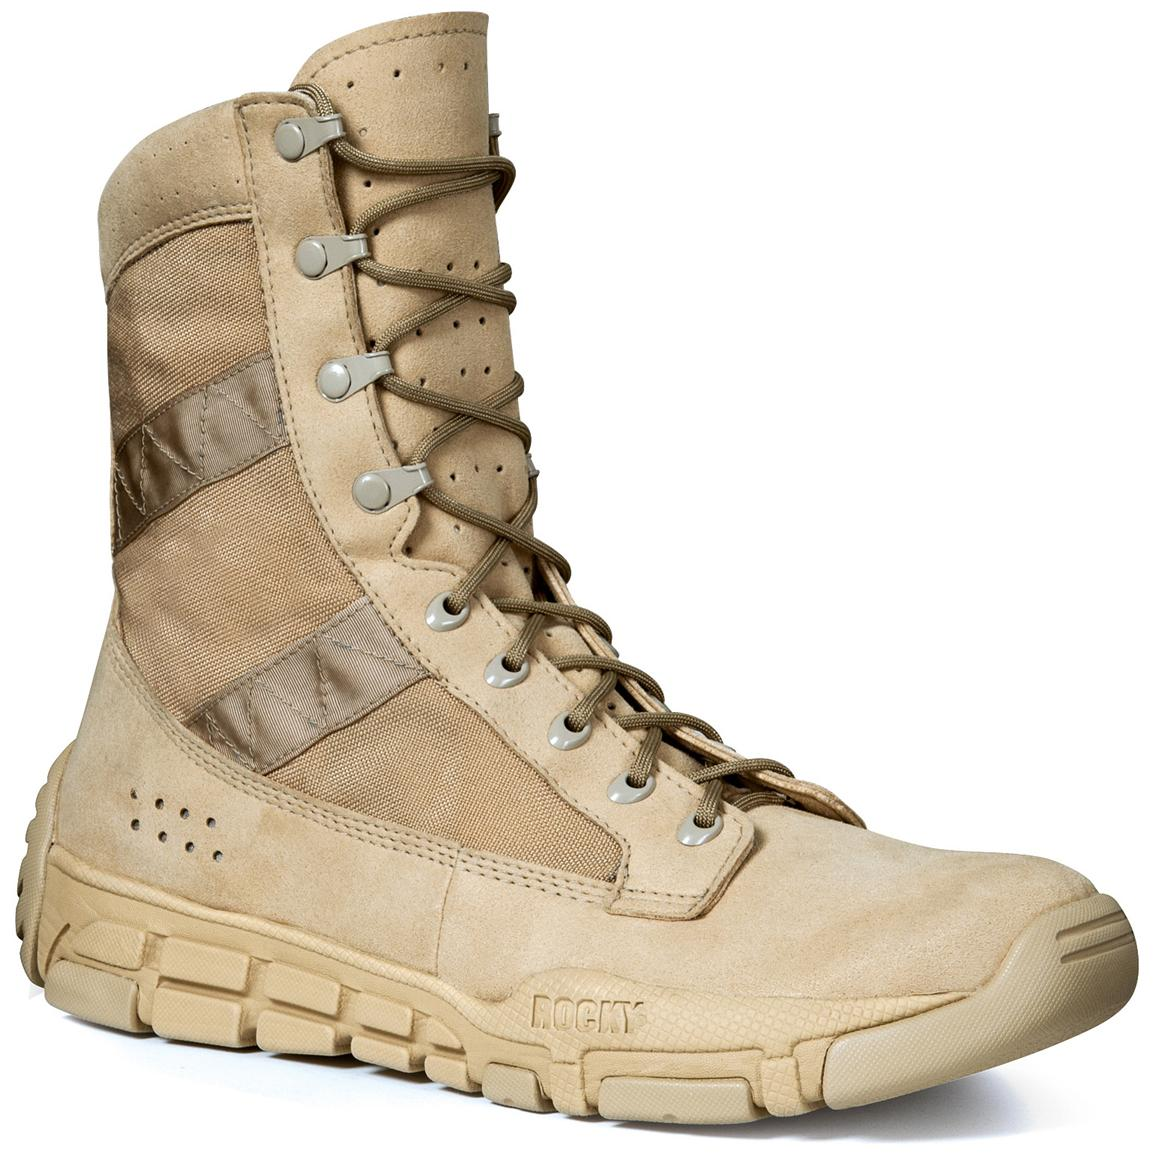 Men's Rocky® C4T Military Boots, Desert Tan